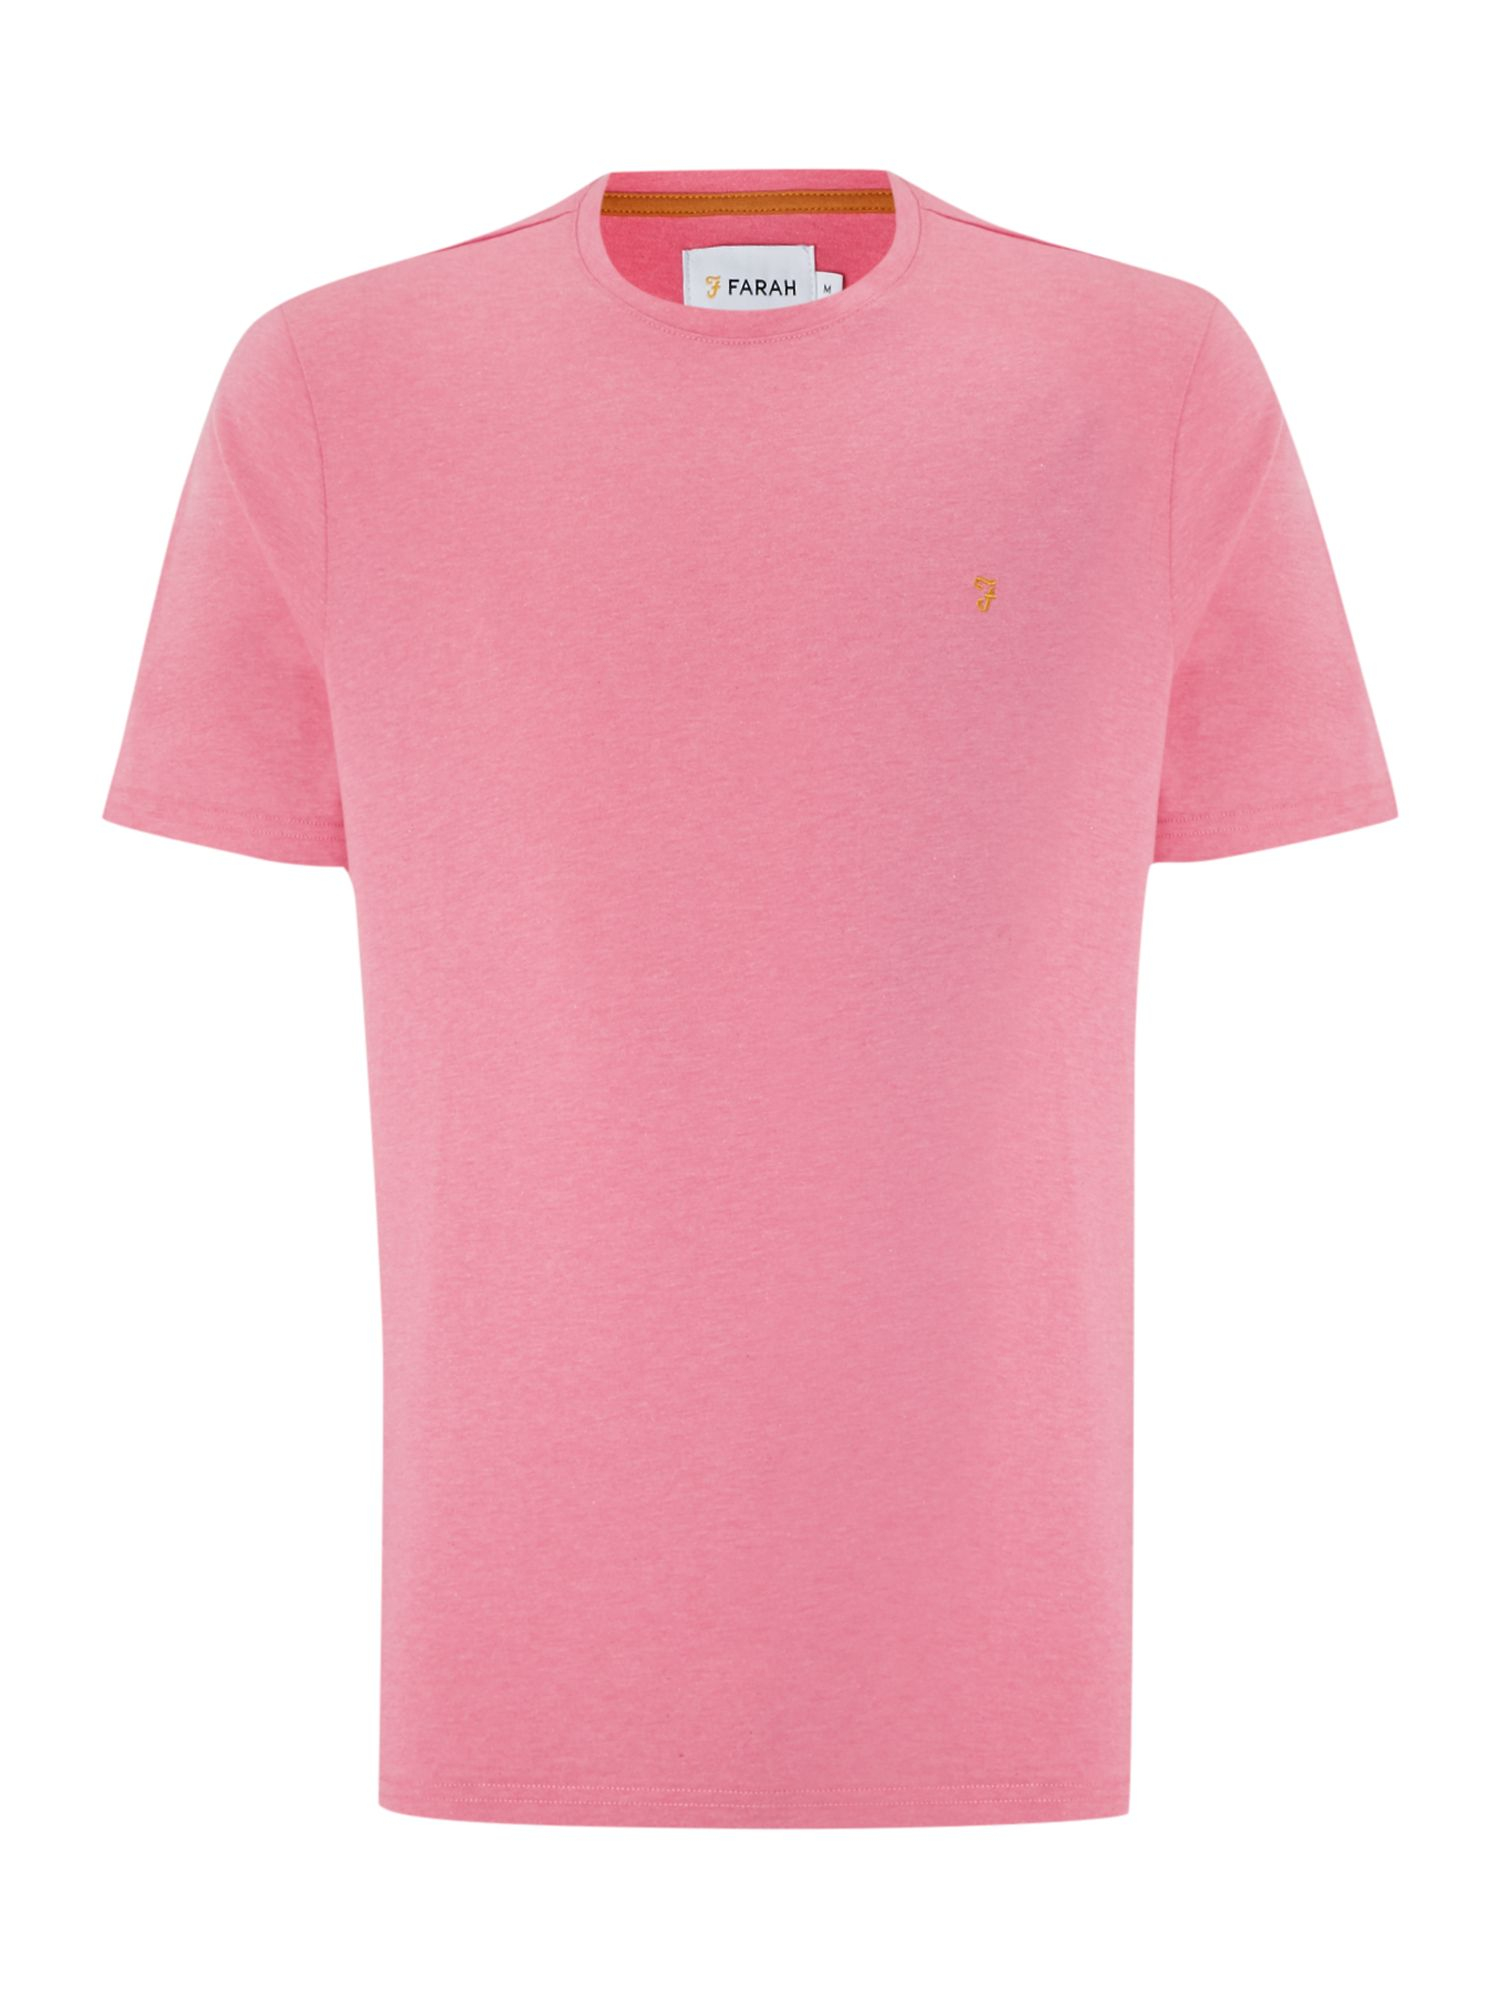 Farah Plain Crew Neck Regular Fit T-shirt in Pink for Men | Lyst